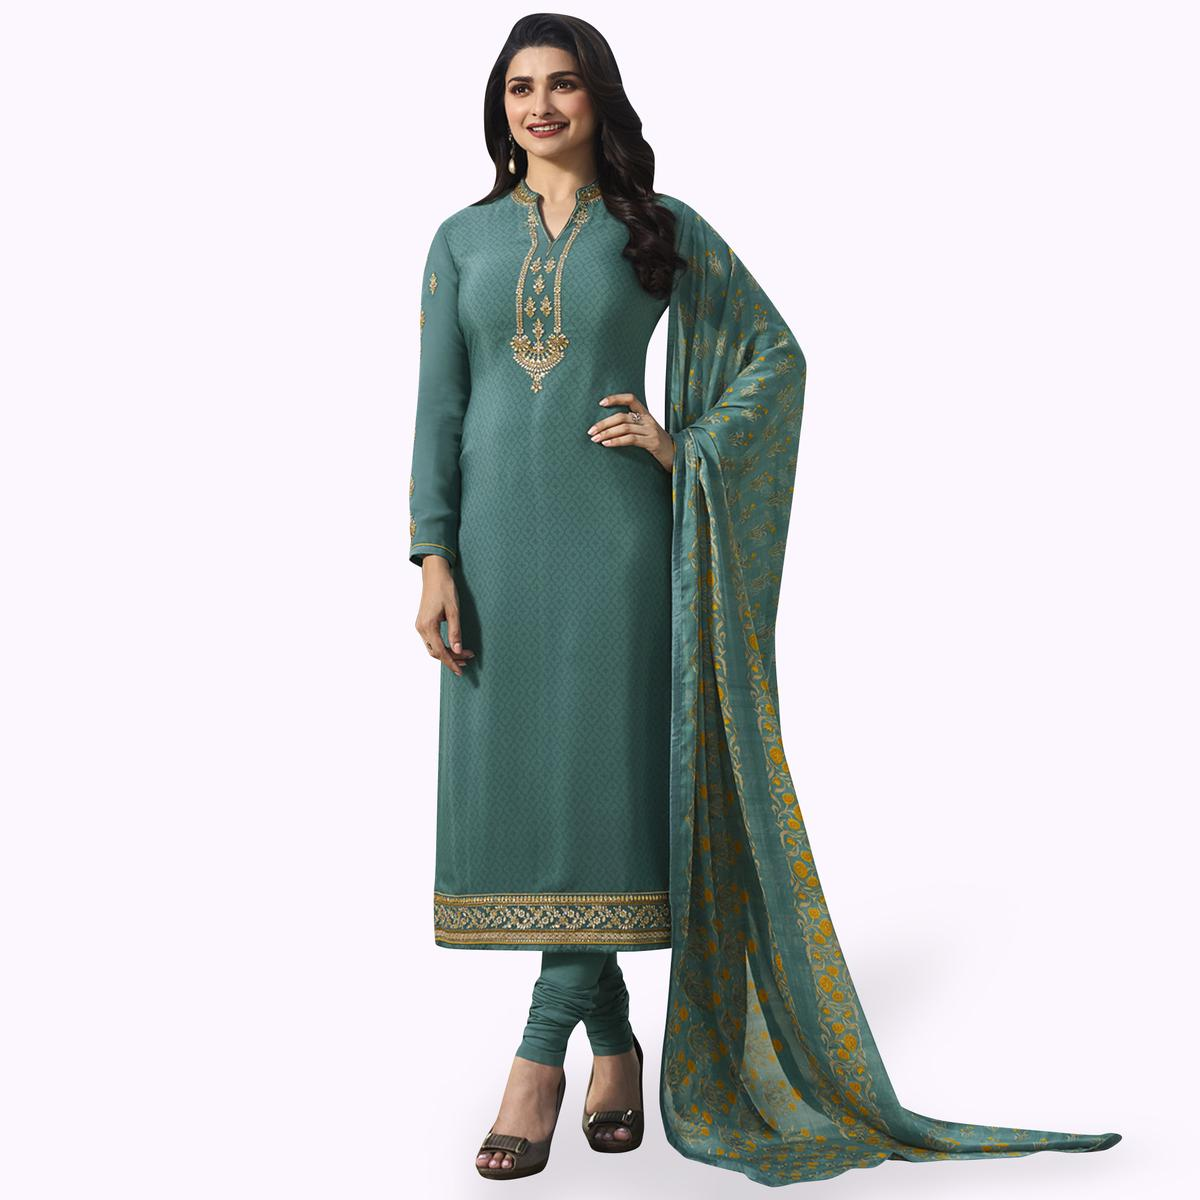 Radiant Teal Gray Colored Partywear Embroidered Crepe Suit